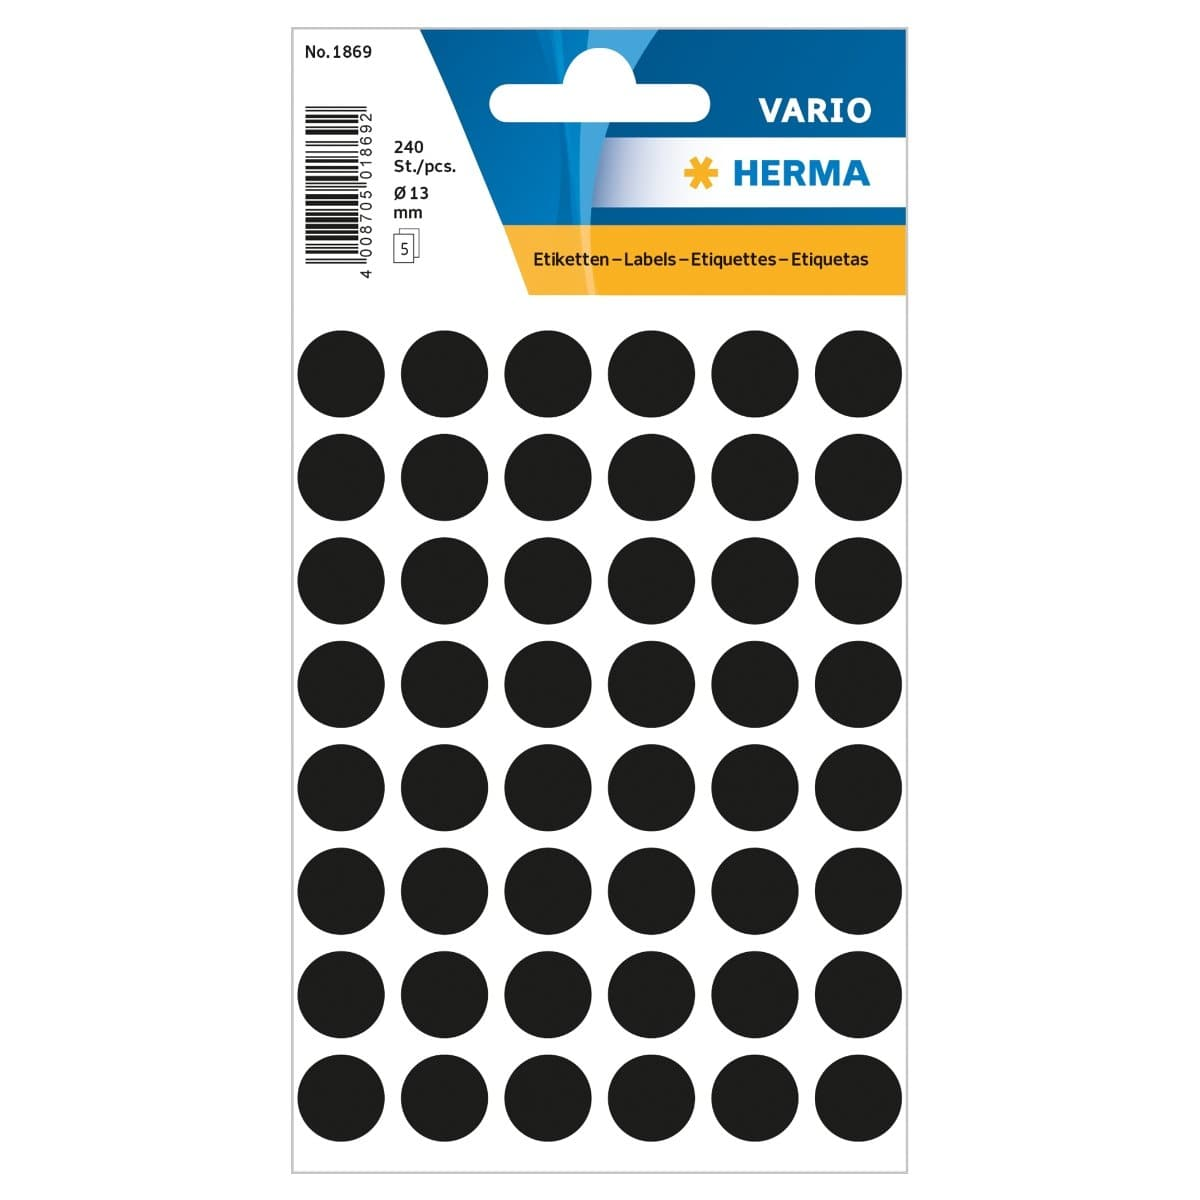 Herma Vario Sticker Color Dots, 13 mm, 240/pack, Black